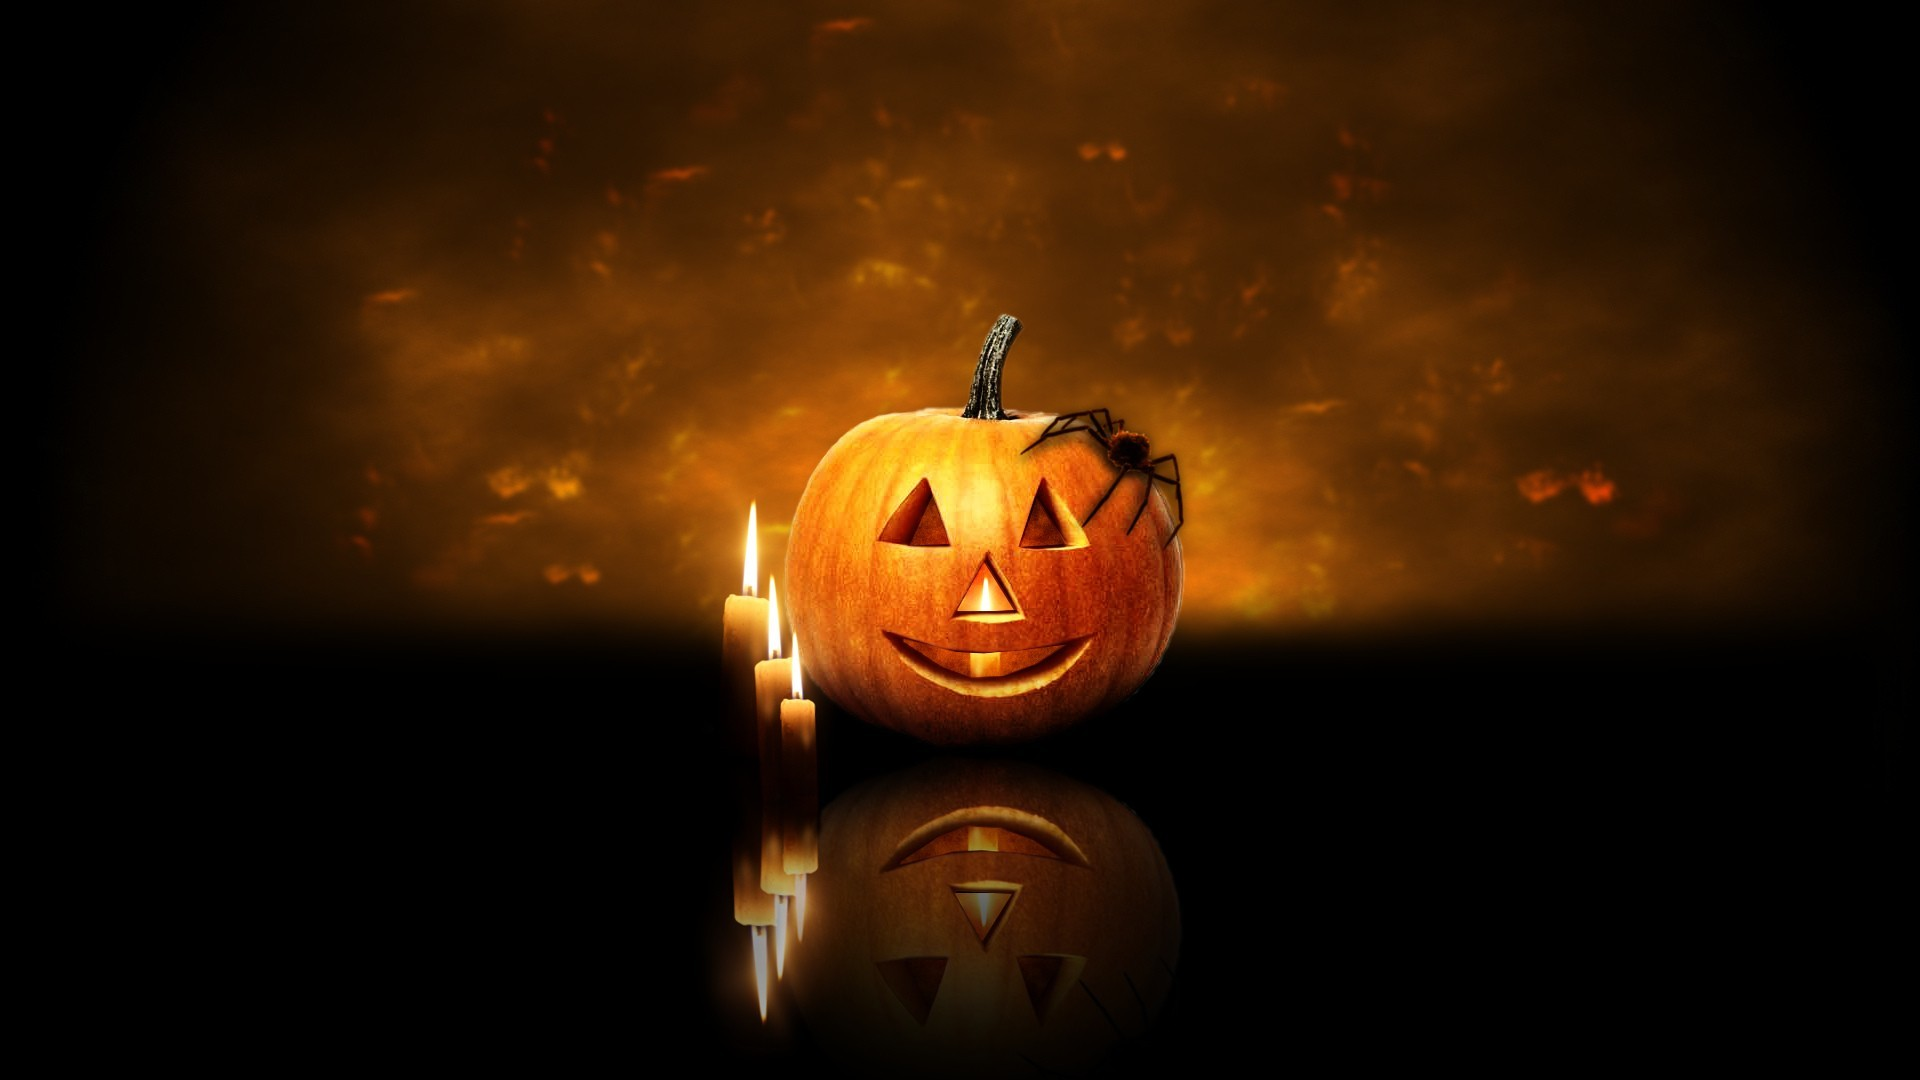 Halloween spiders pumpkins pumpkin HD Wallpaper